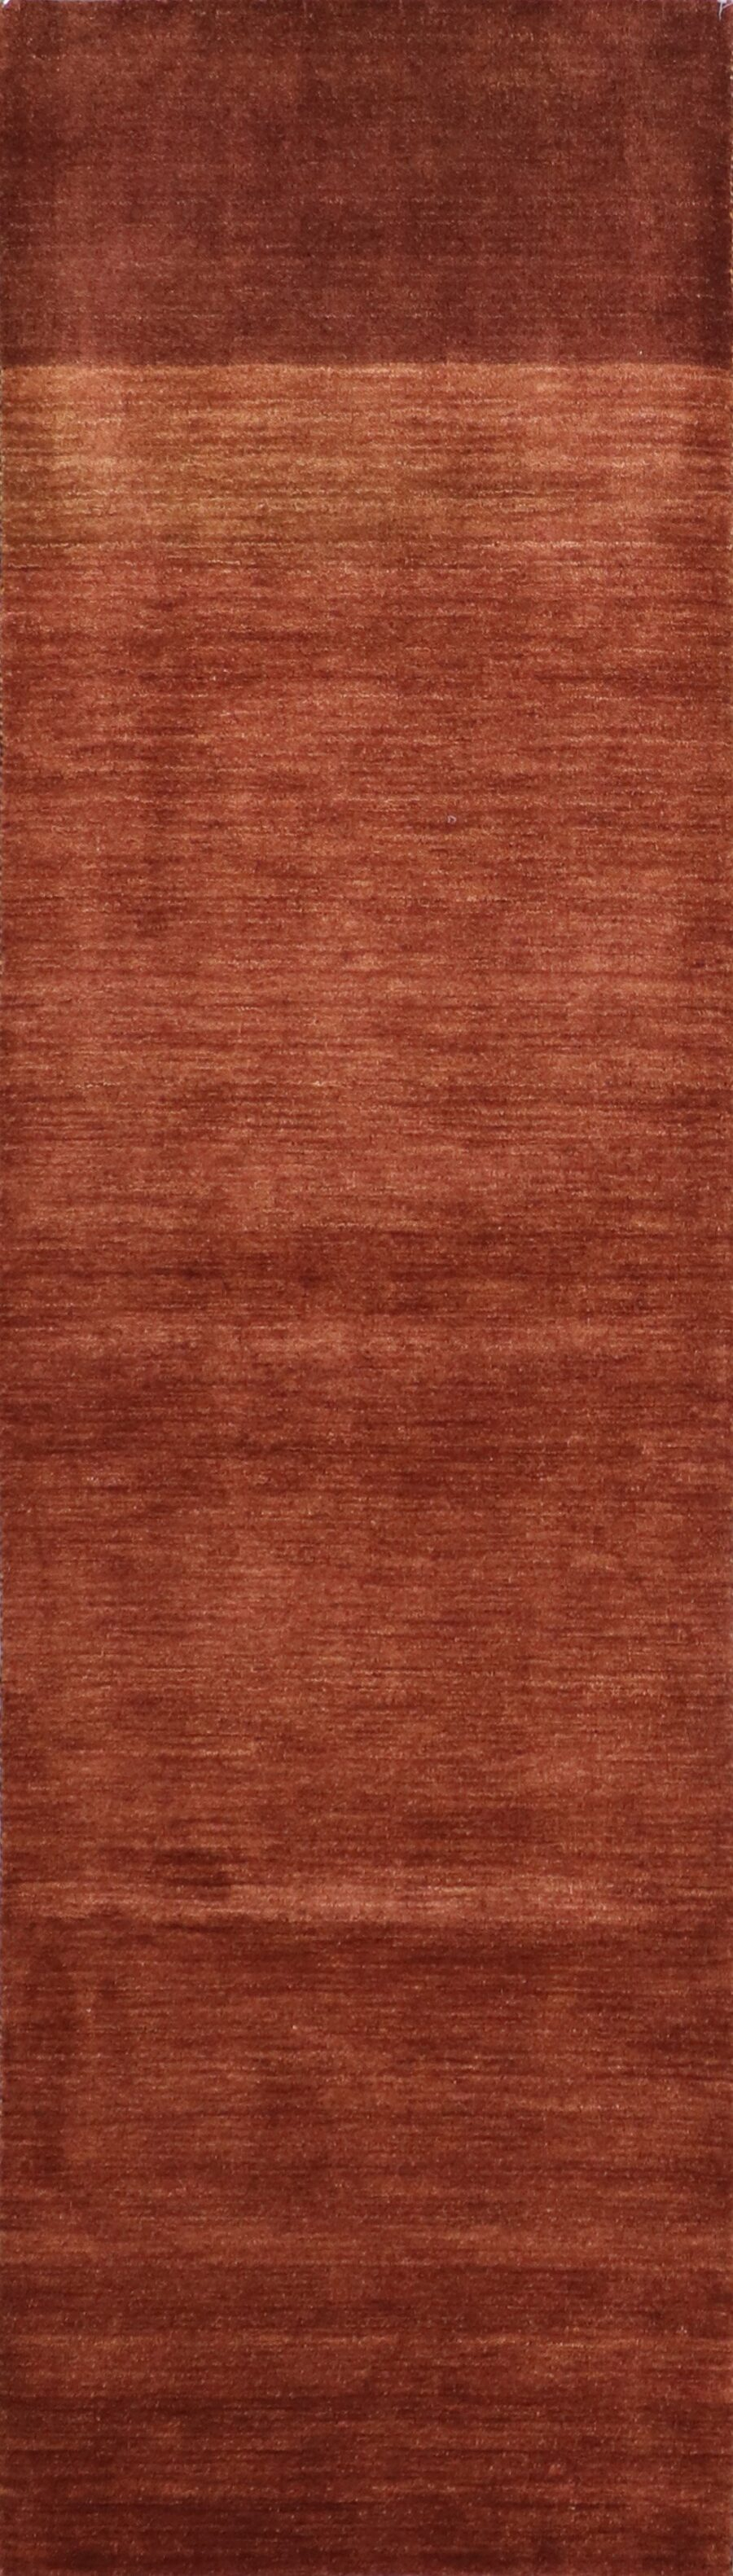 """2'8""""x9'9"""" Contemporary Brown Wool Hand-Knotted Rug - Direct Rug Import   Rugs in Chicago, Indiana,South Bend,Granger"""